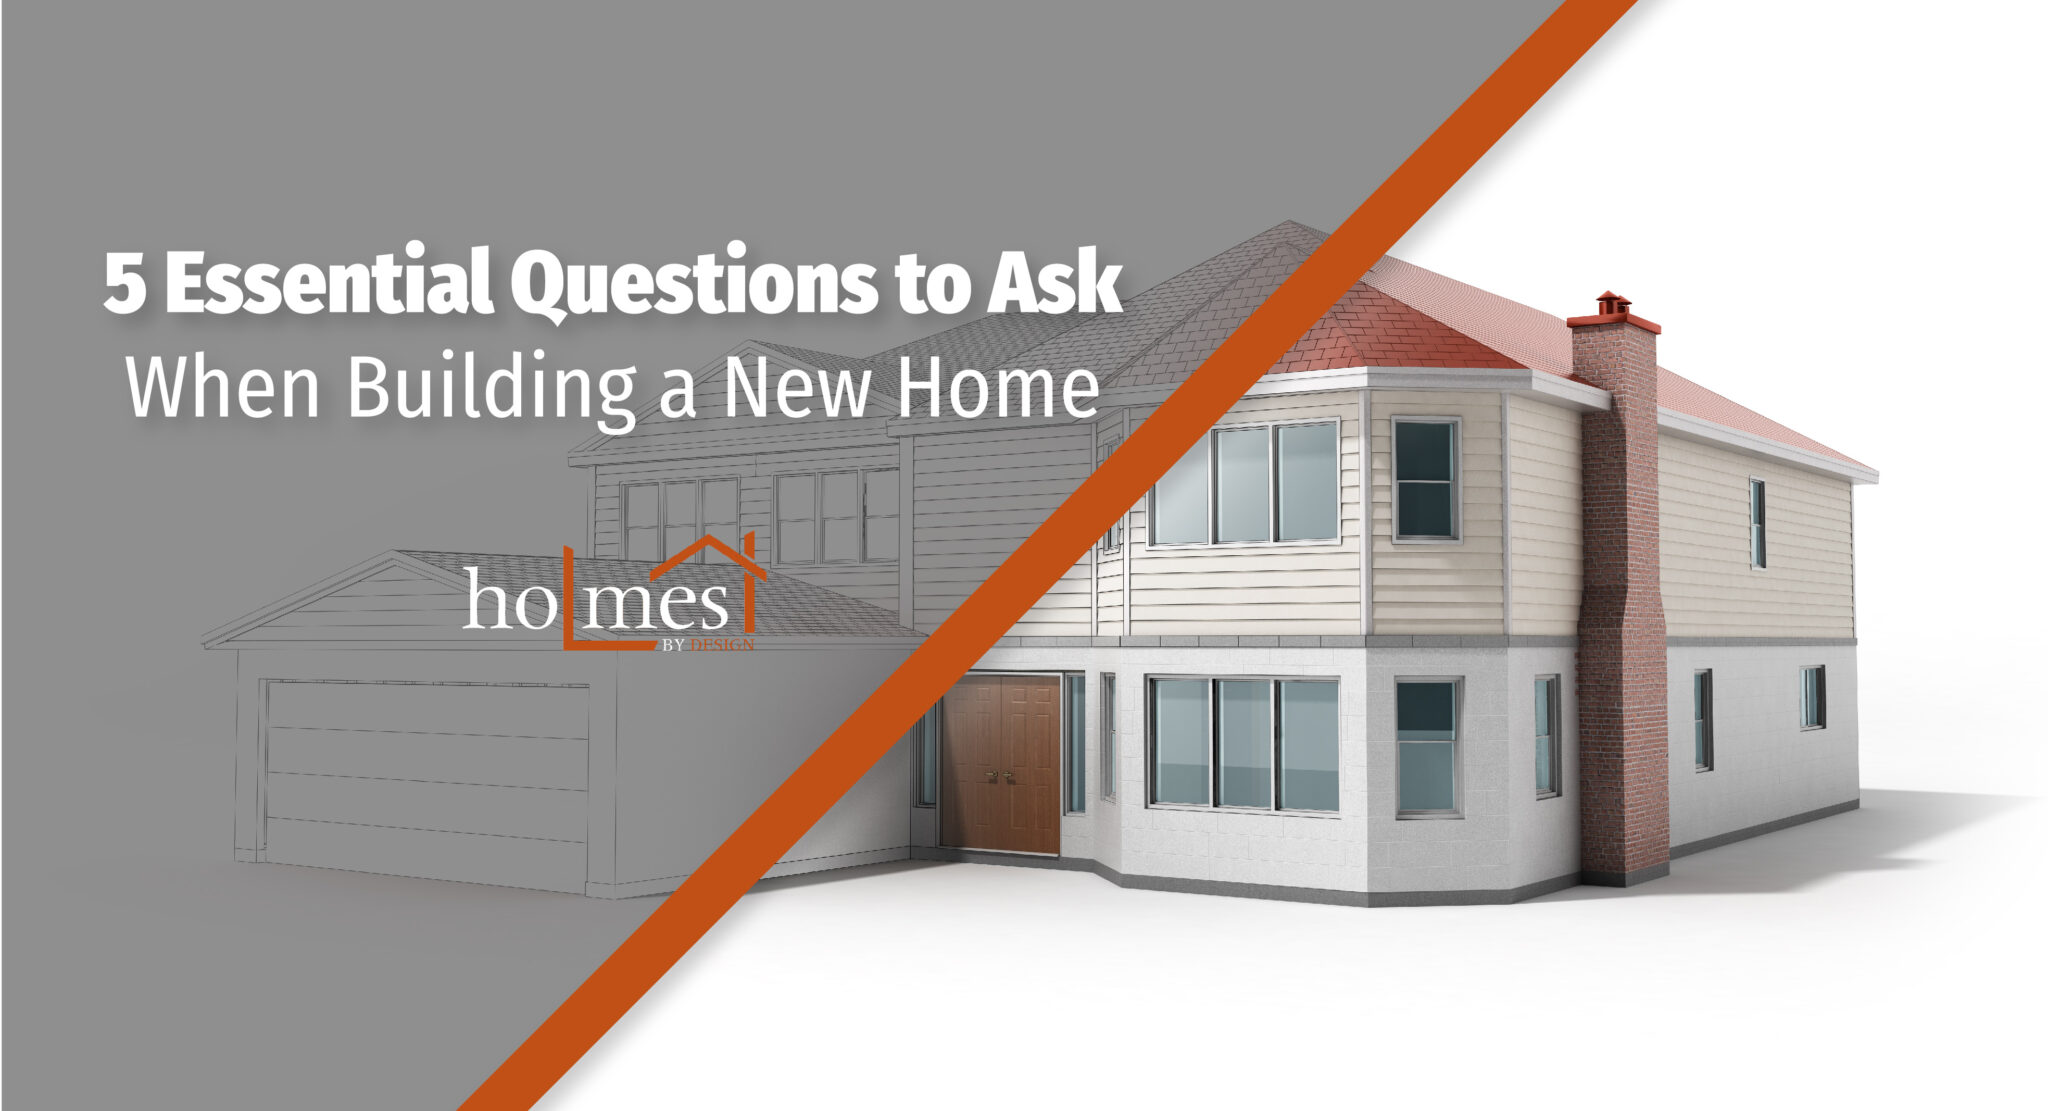 5 Essential Questions to Ask When Building a New Home